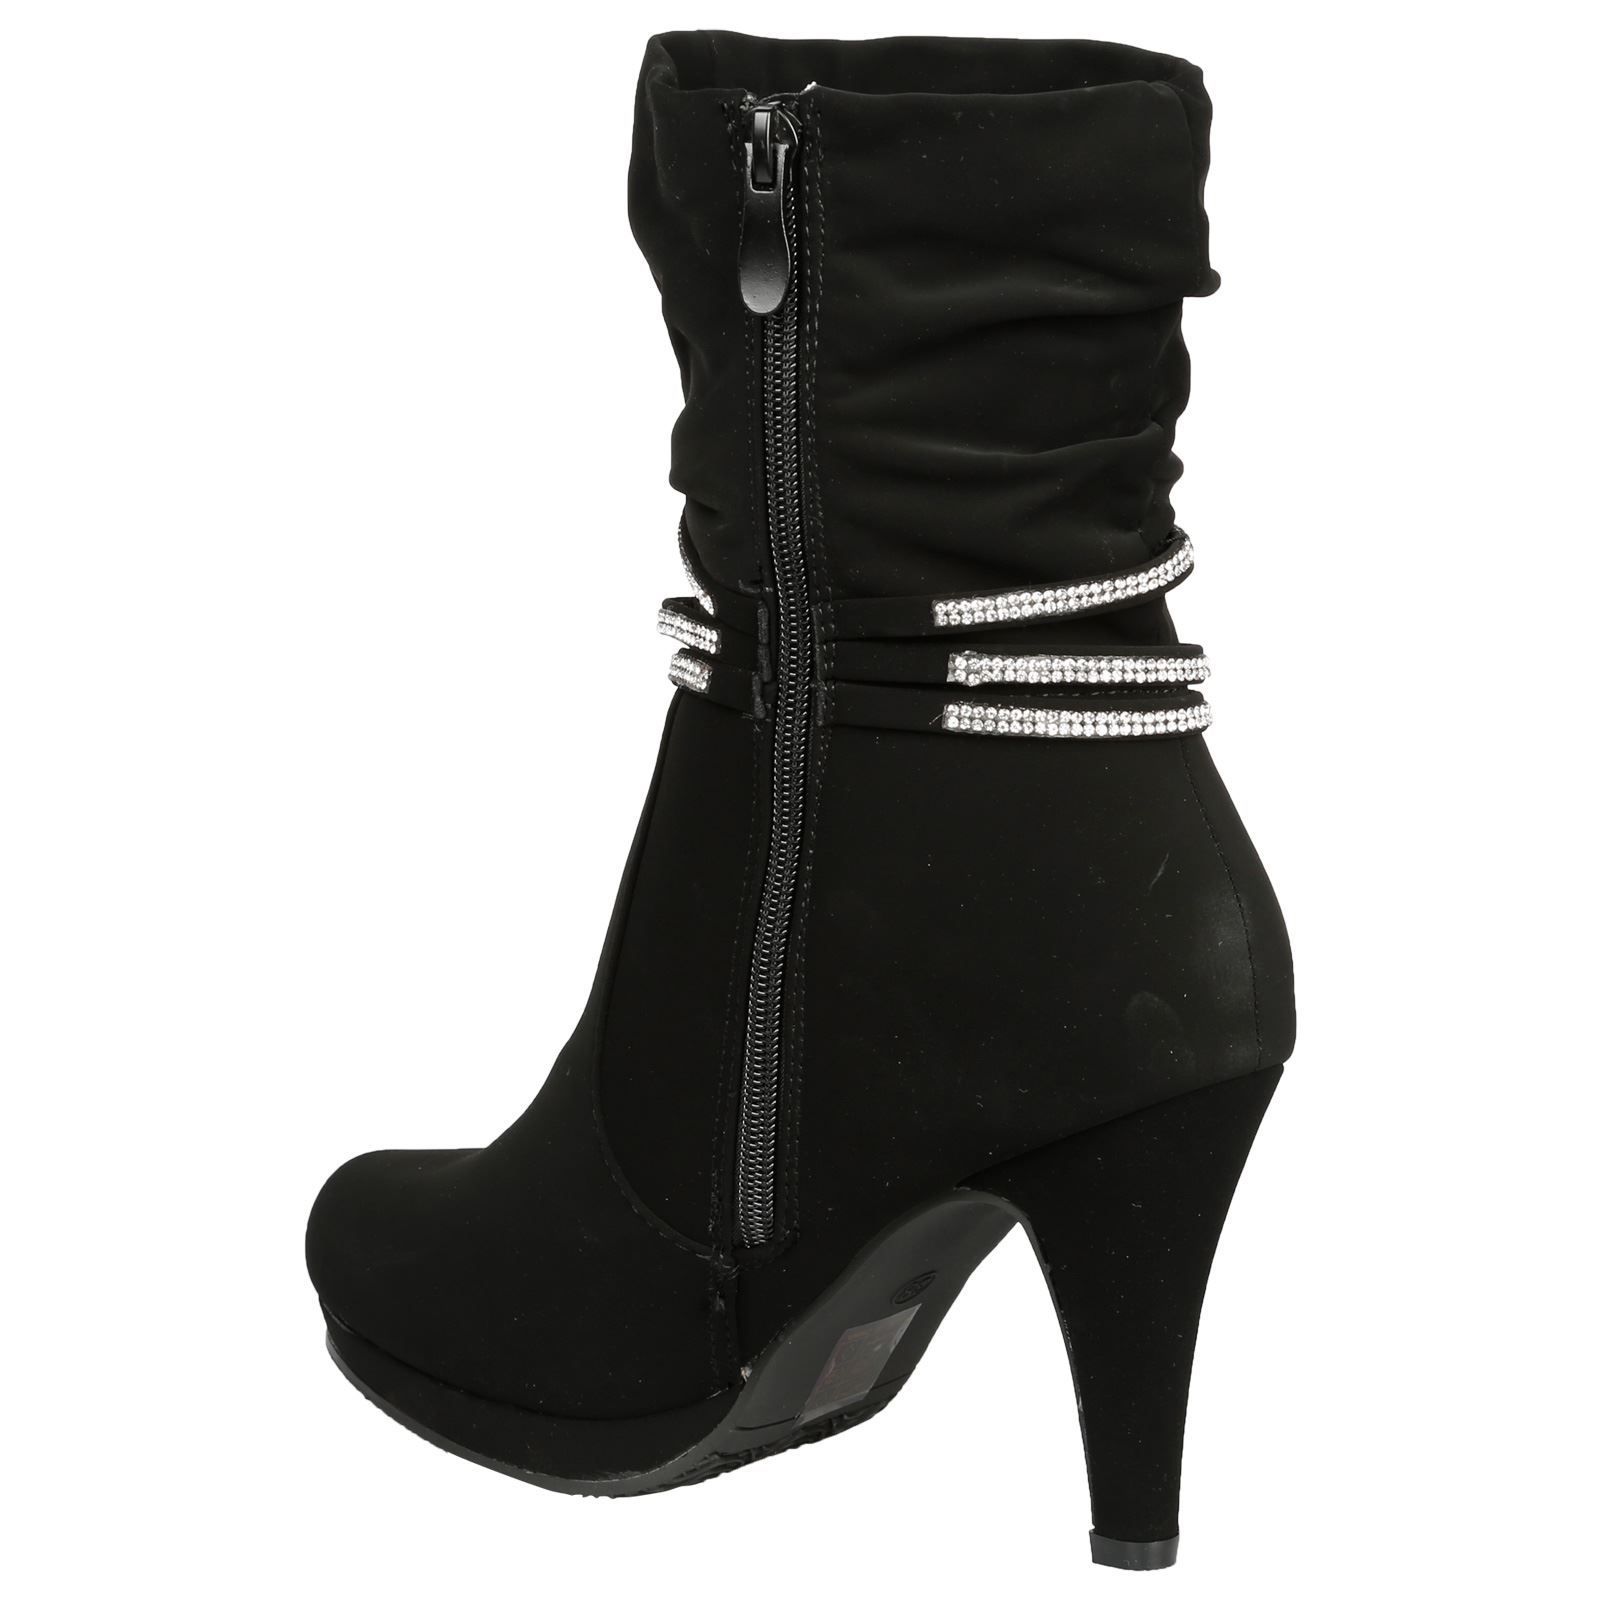 Estrella-Womens-Slim-High-Heel-Diamante-Strap-Slouch-Ankle-Boots-Casual-Style thumbnail 5